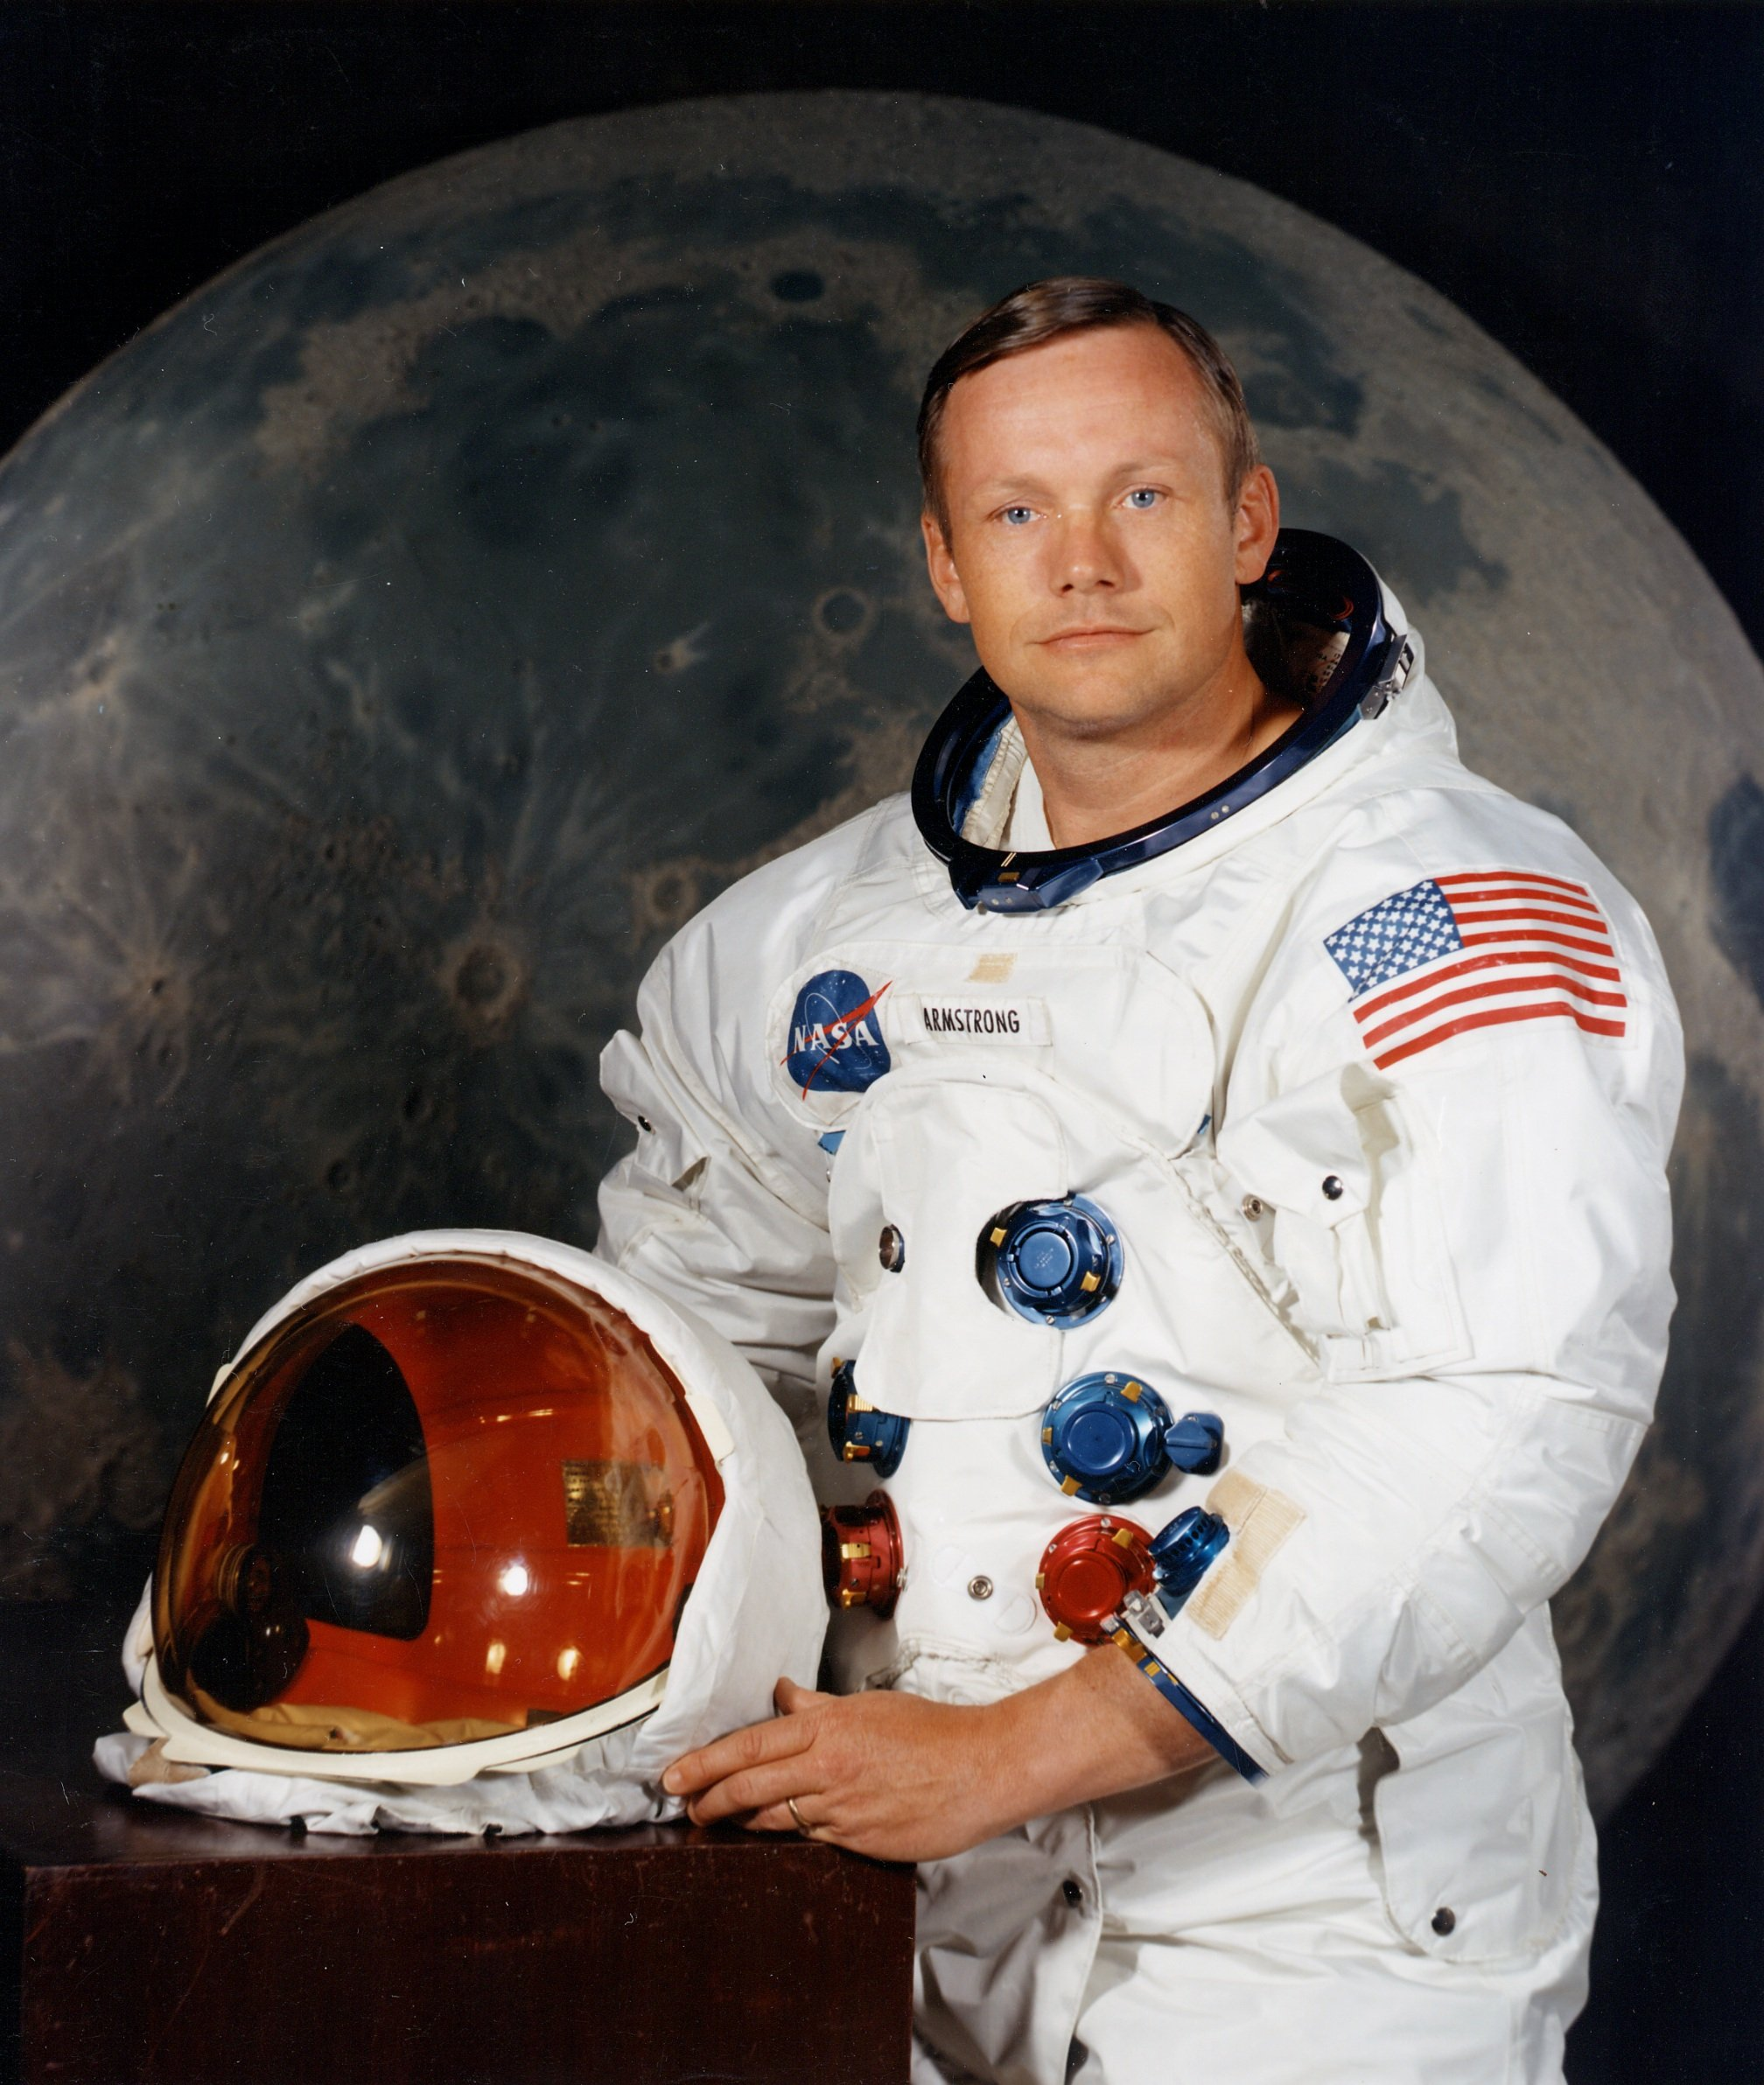 Neil Armstrong, First Man on the Moon: I fully expected that, by the end of the century, we would have achieved substantially more than we actually did.